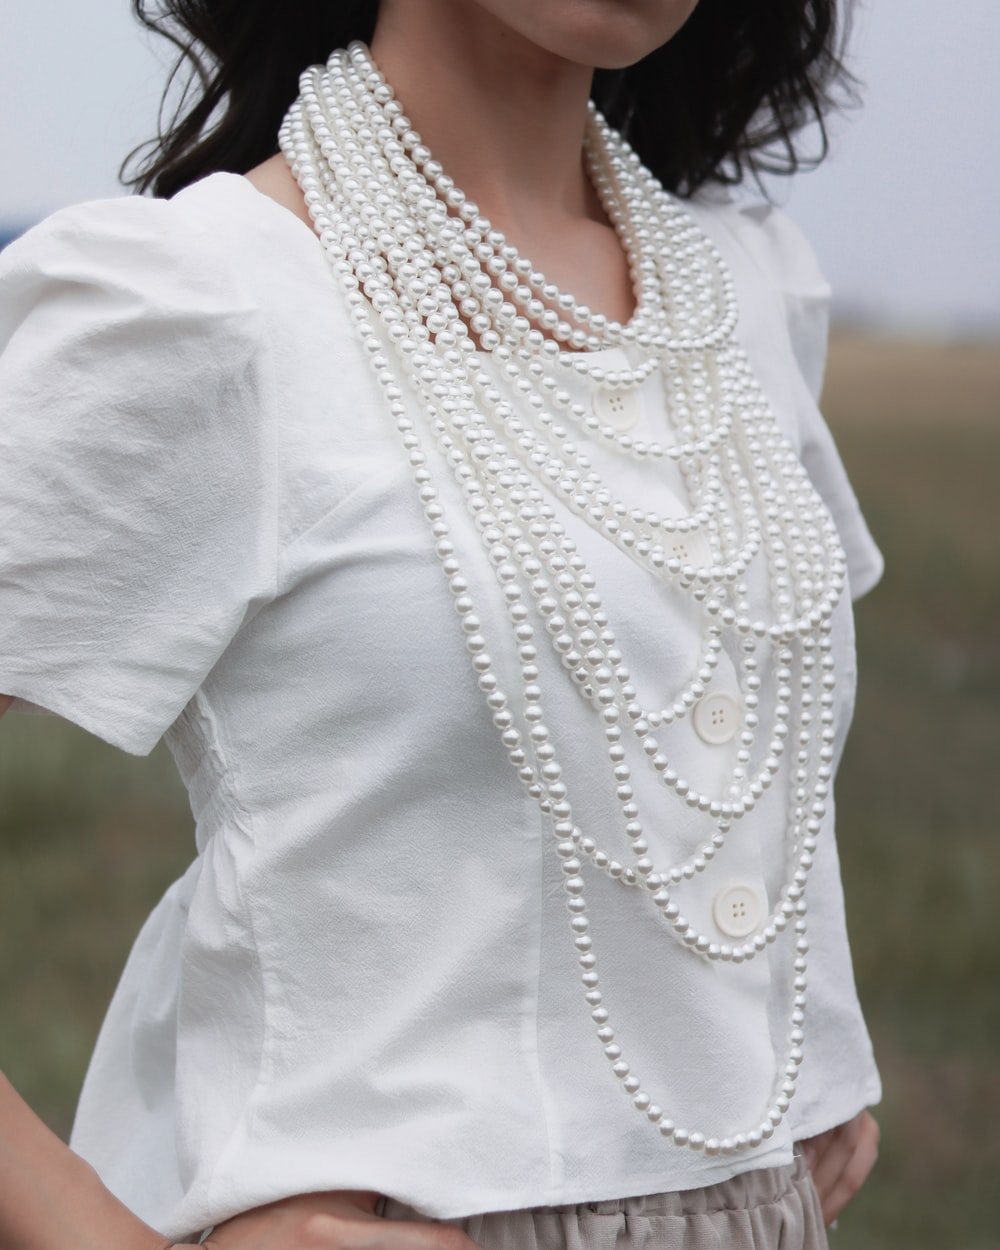 woman wearing white blouse and white pearl necklace